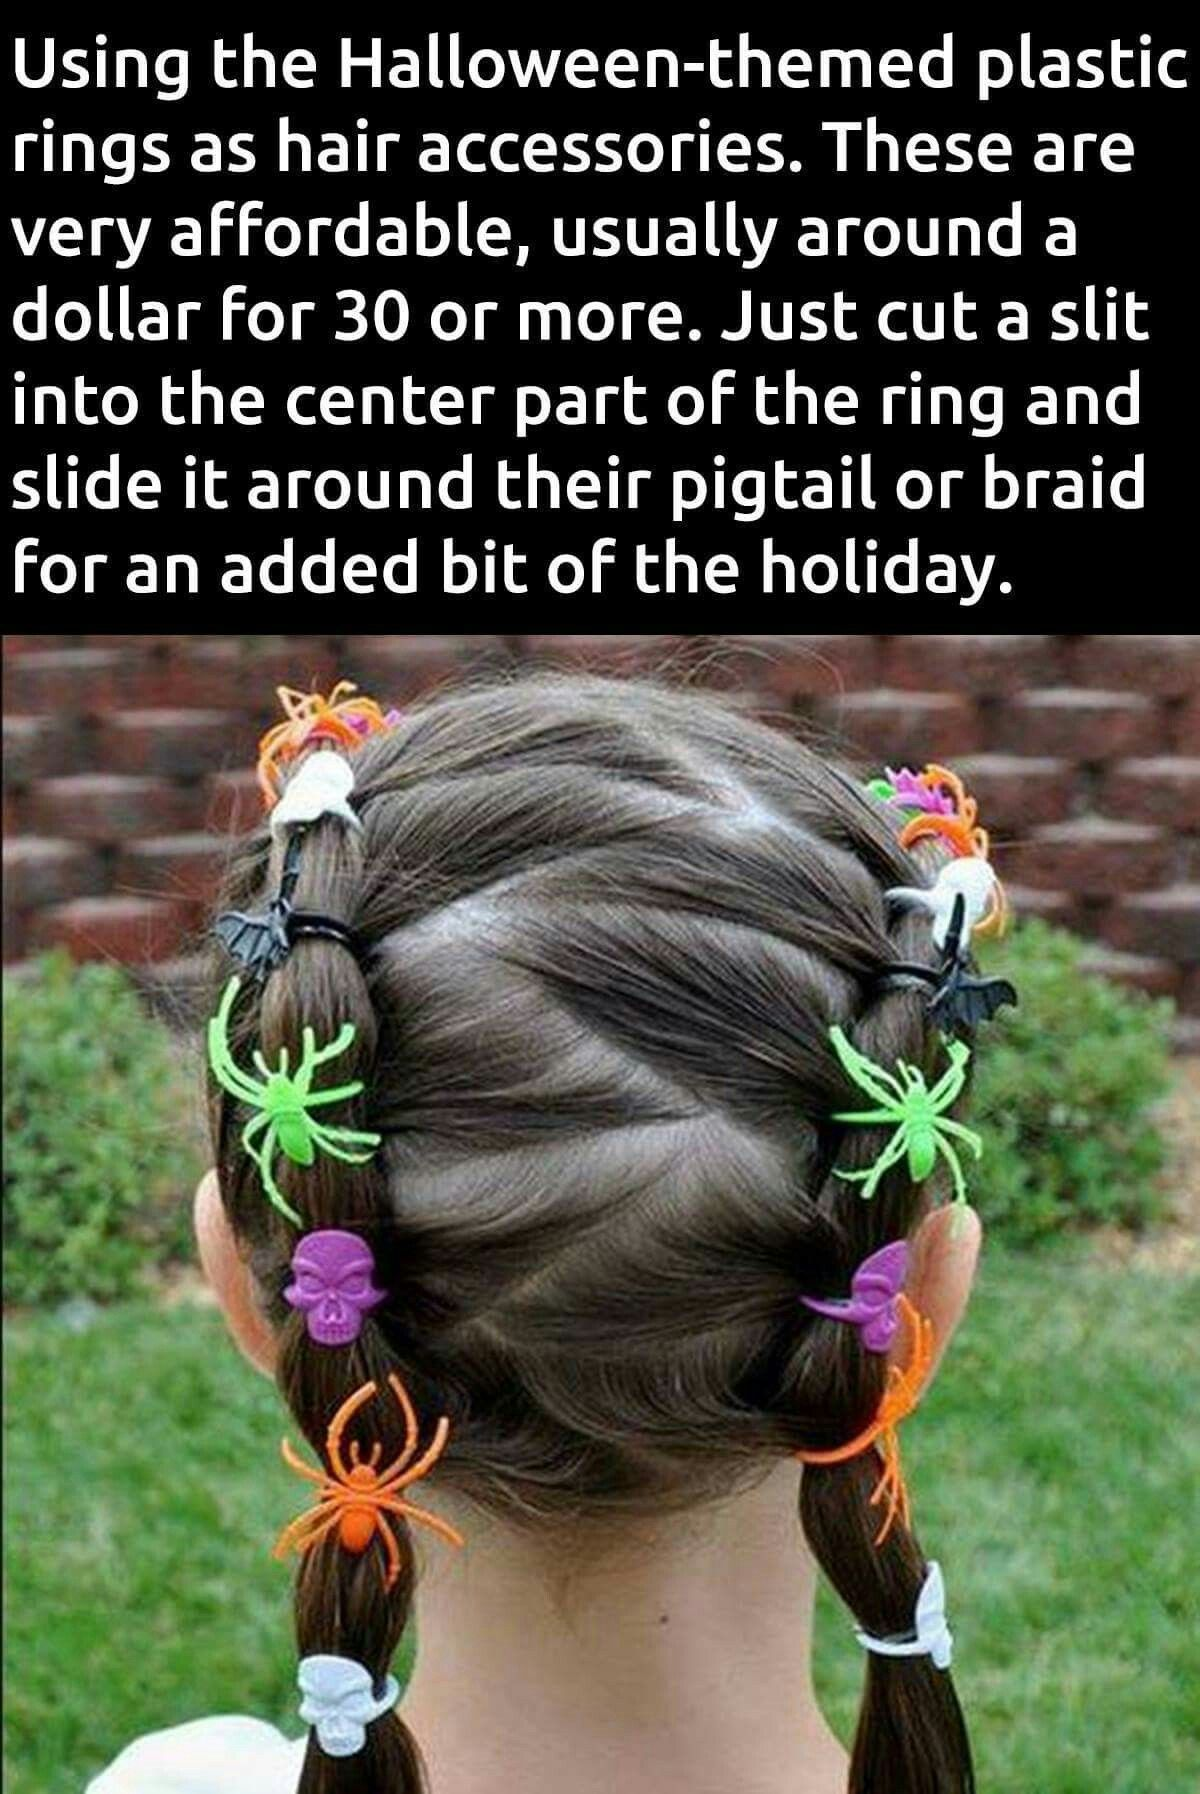 Halloween hair for girls using spider rings as decorations